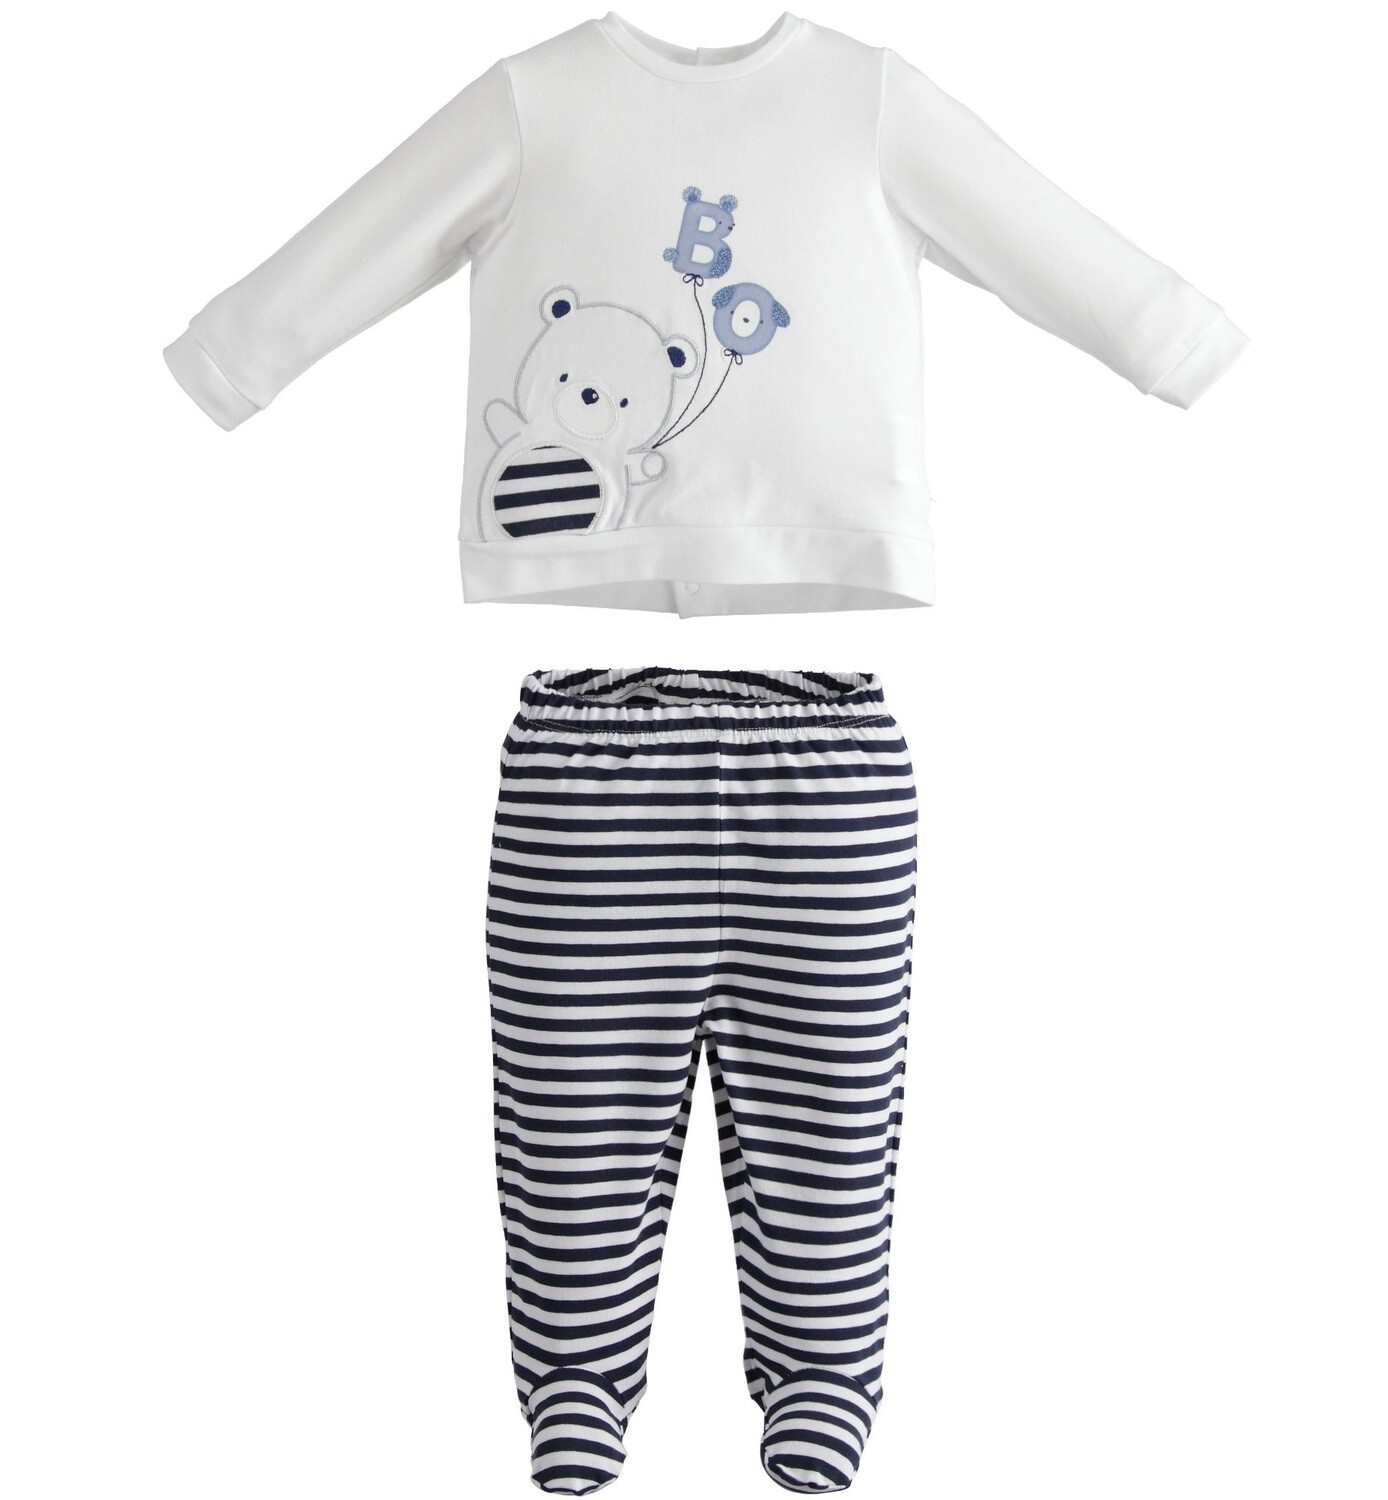 iDO Baby Boy Two-piece romper with elephant and bunny